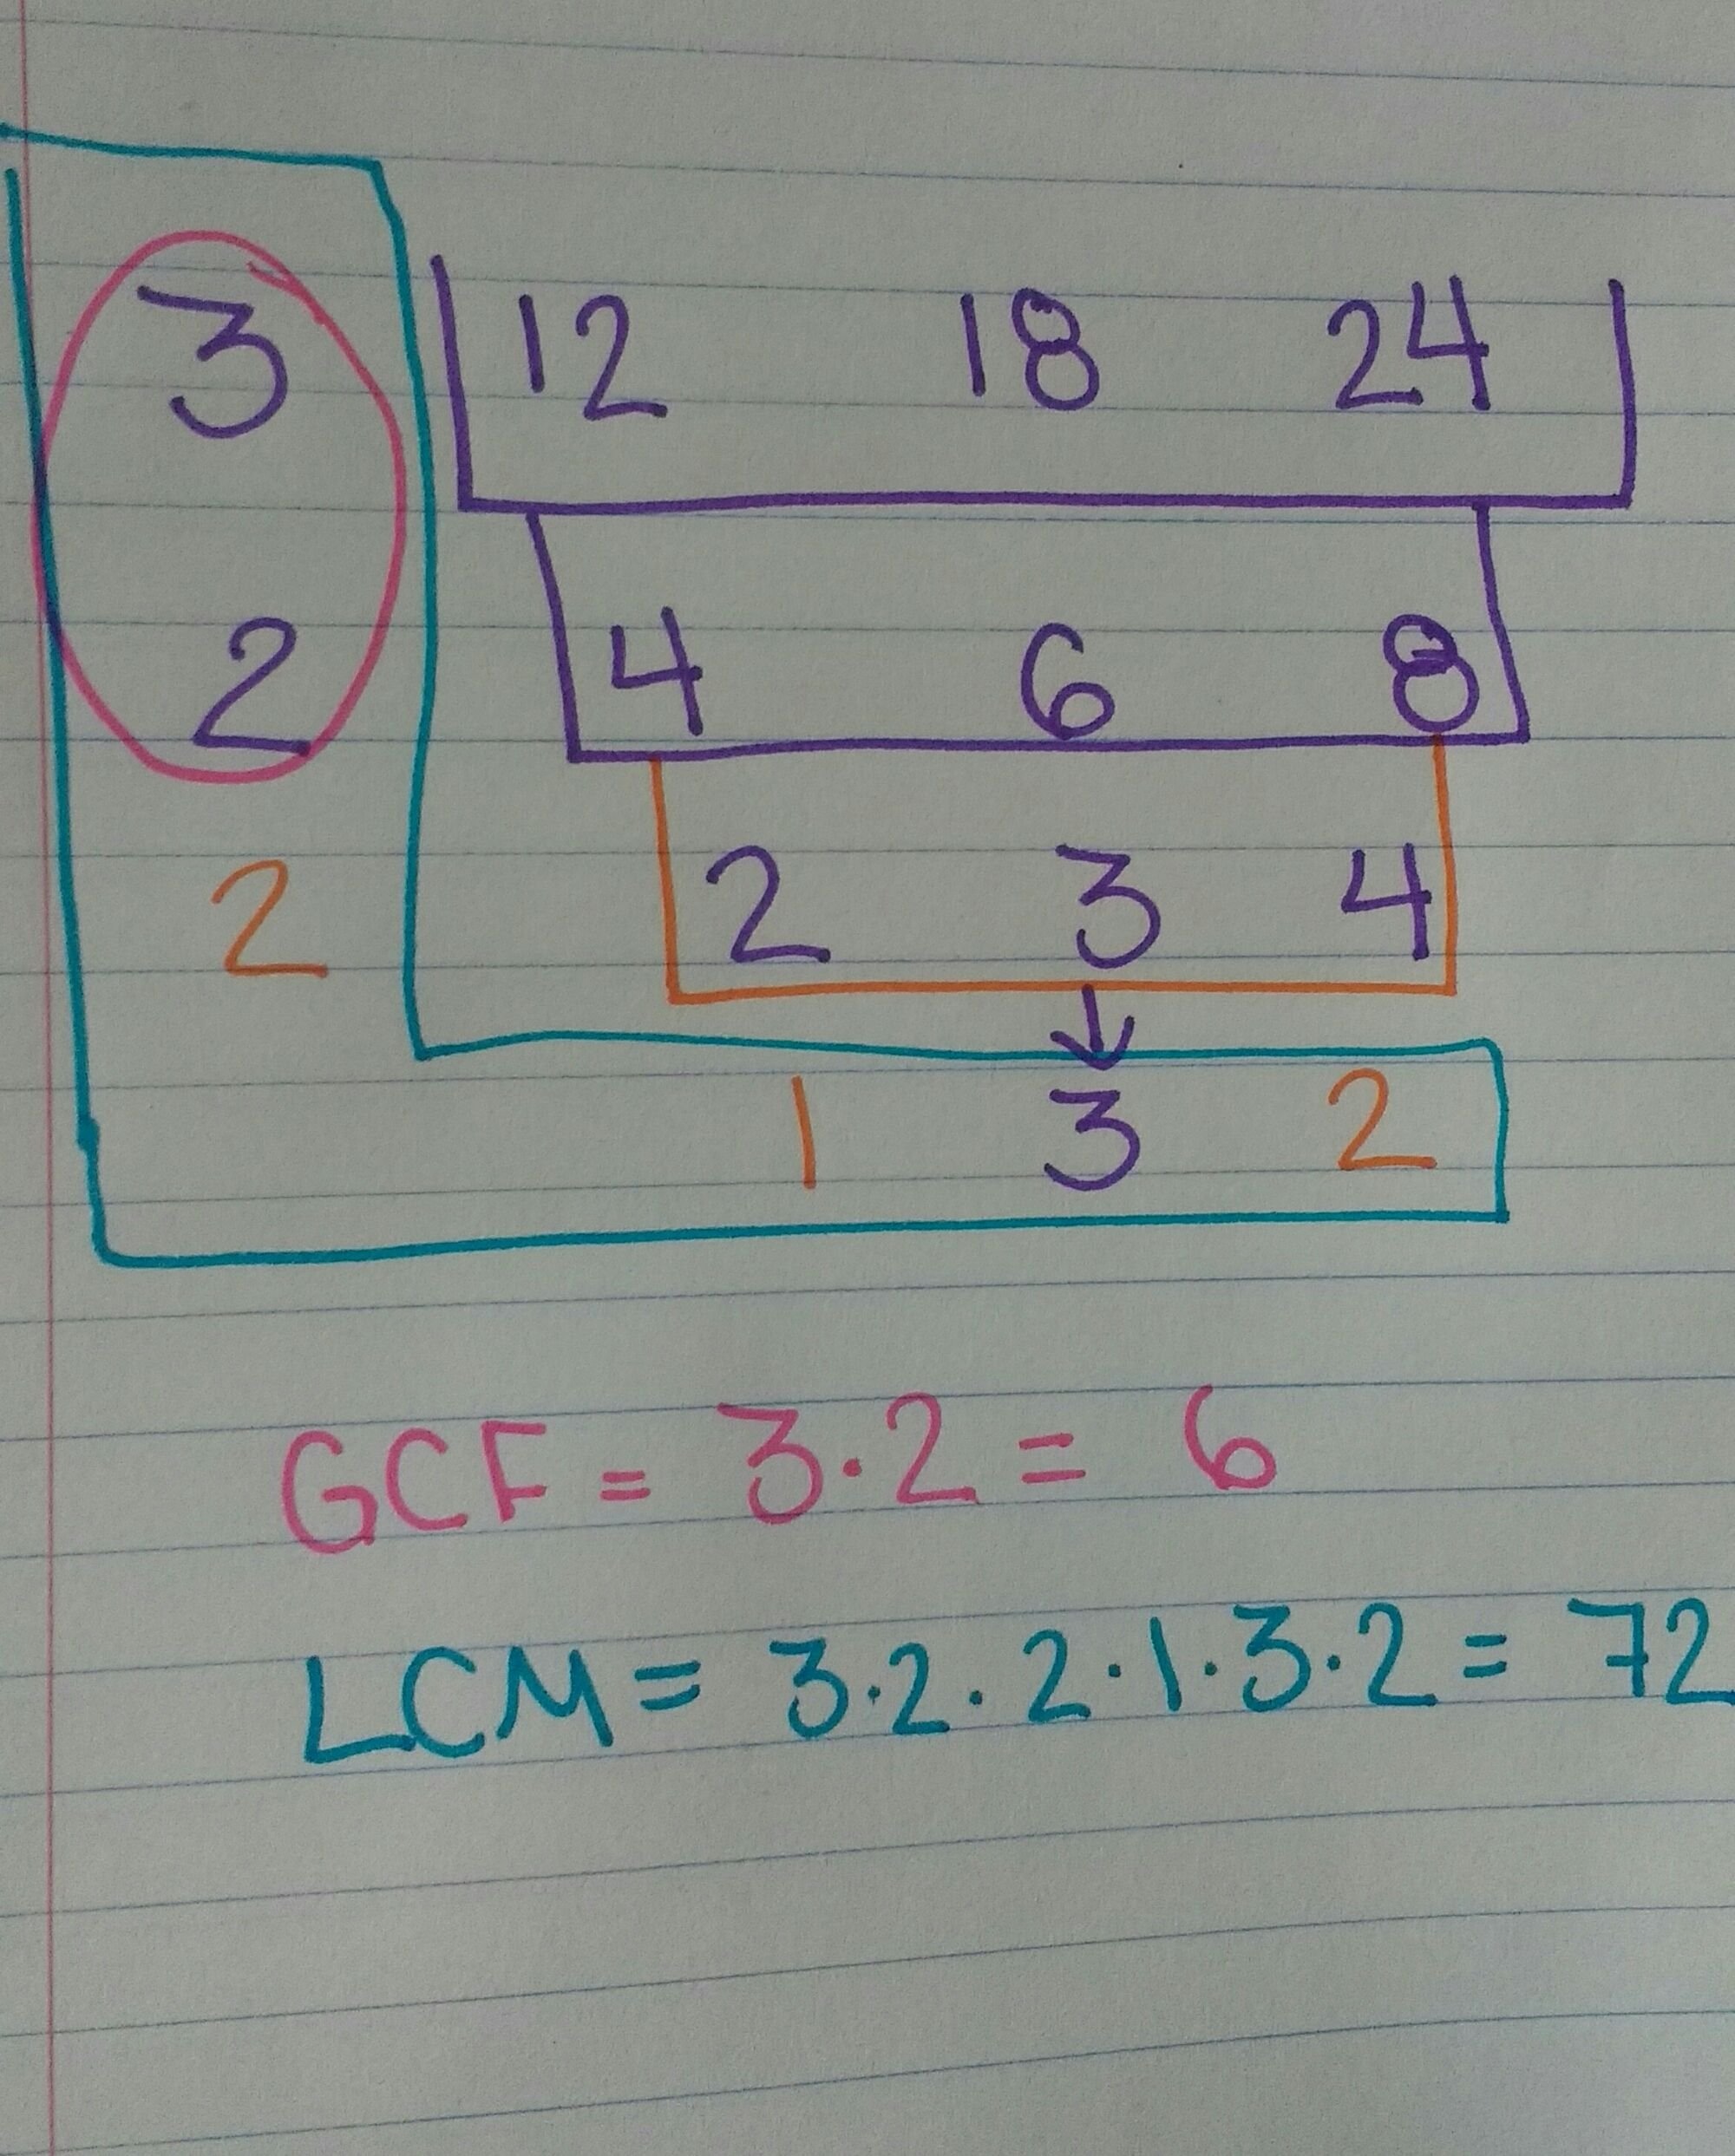 Finding The Gcf Amp Lcm Of 3 Or More Numbers Using The Cake Method